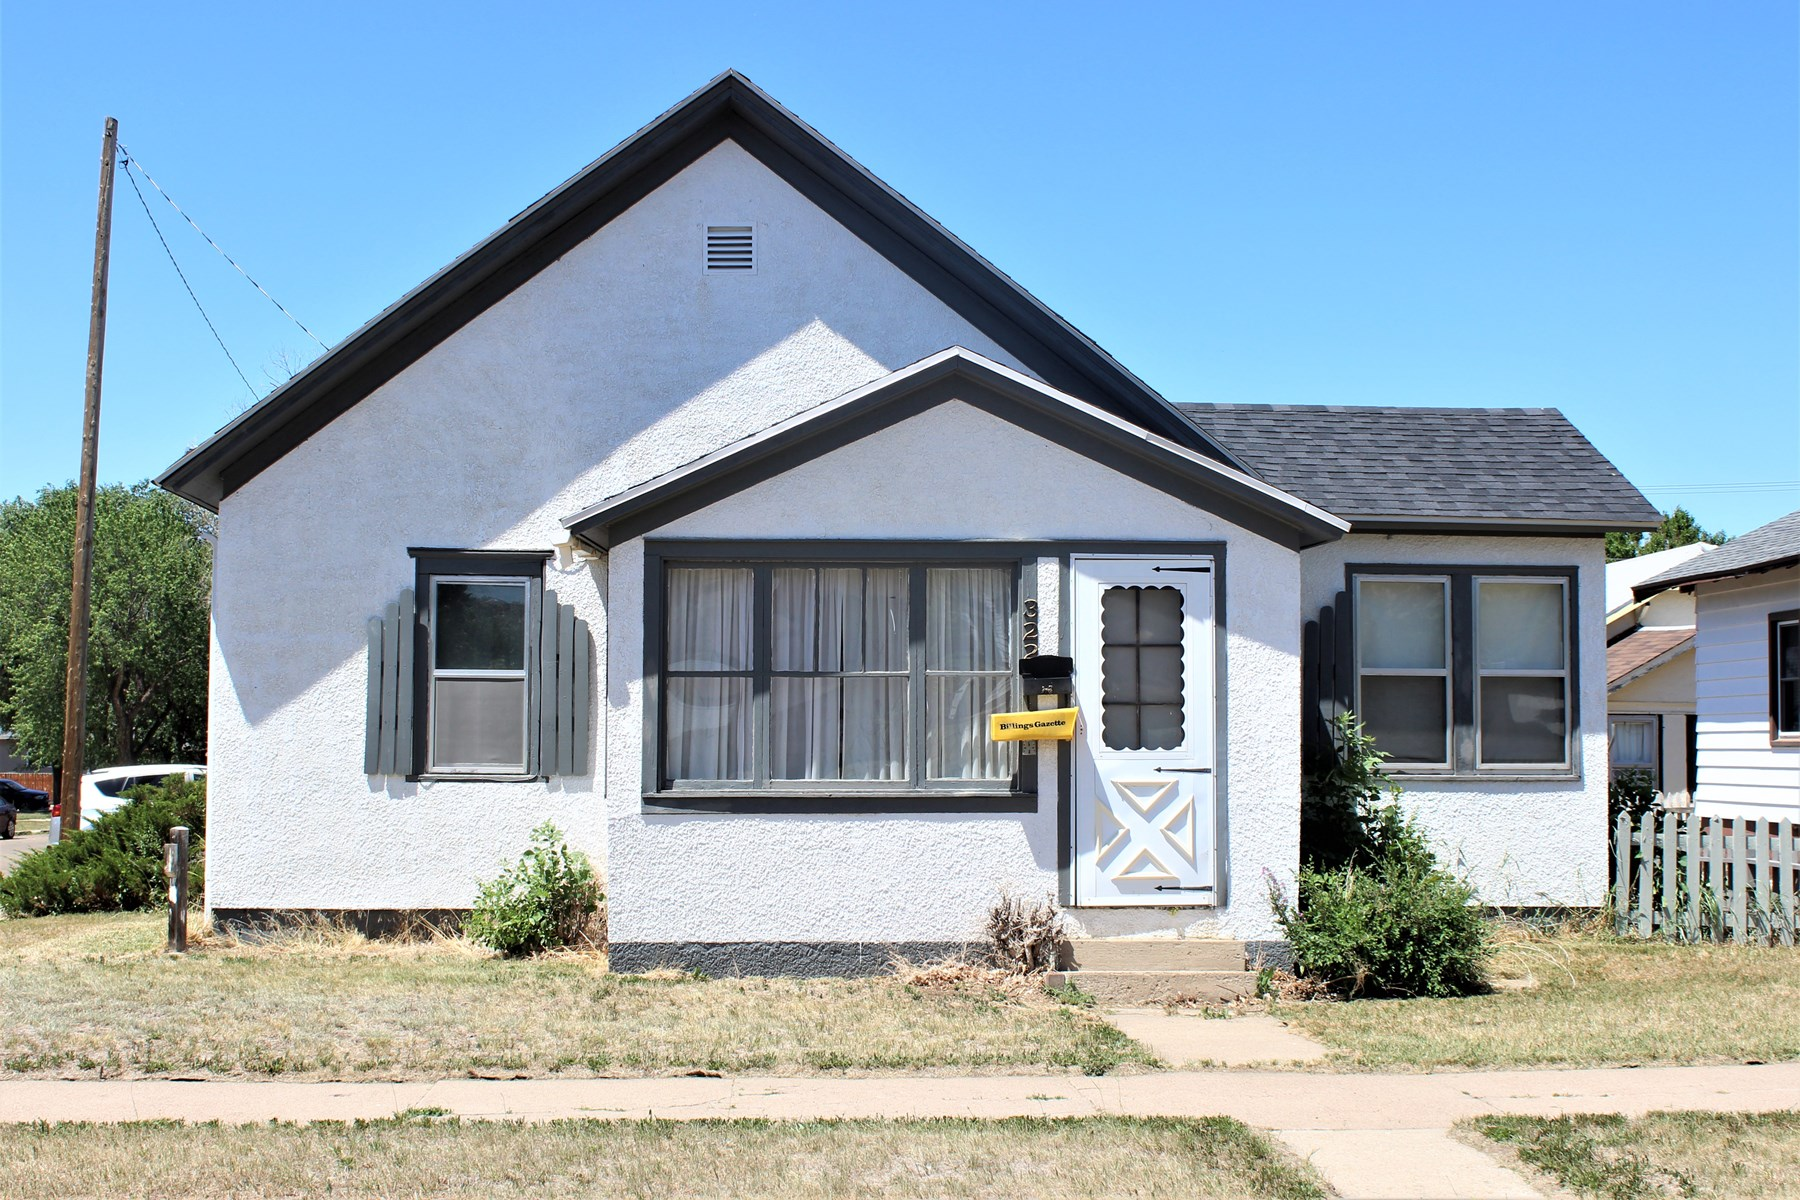 2 Bed 1 Bath Home for sale in Glendive MT